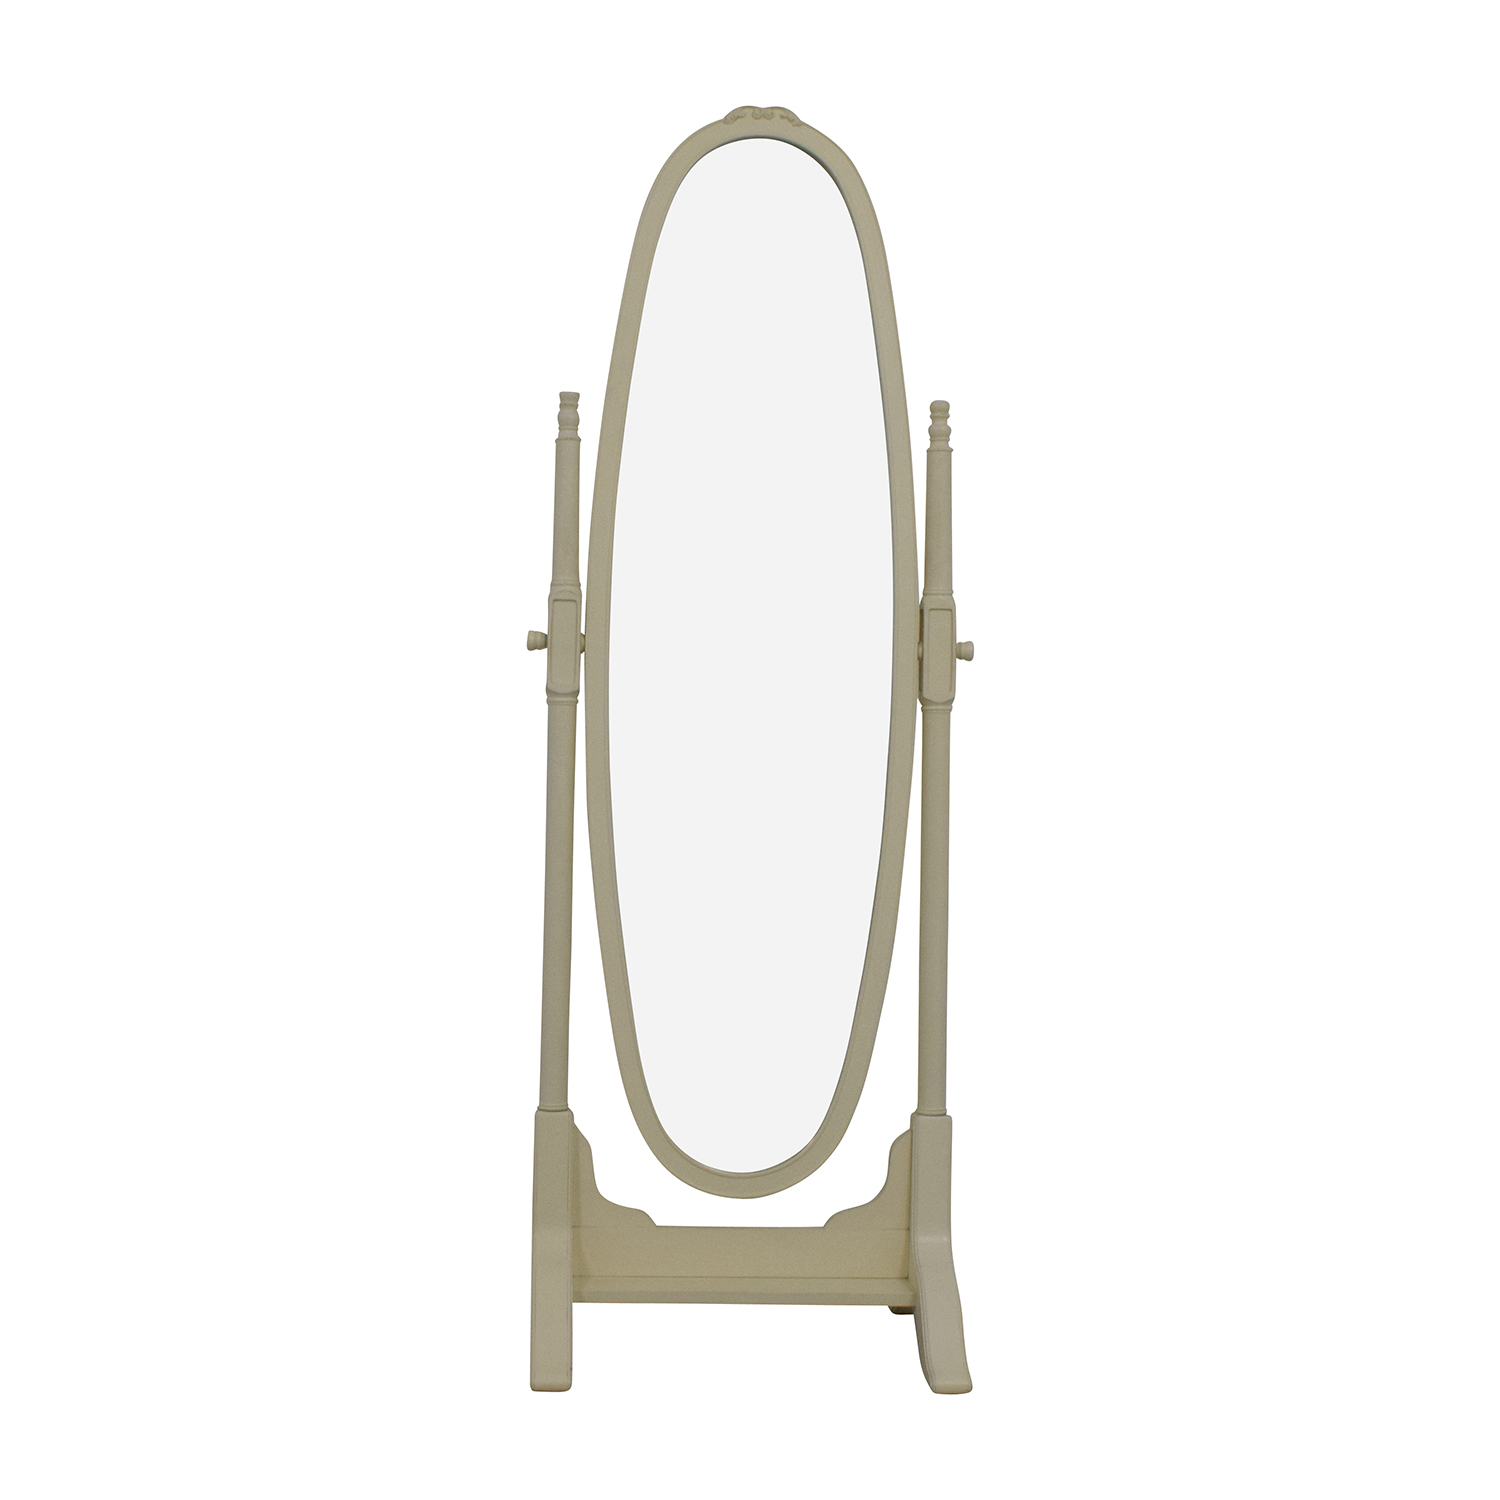 Pottery Barn Pottery Barn Vintage White Oval Floor Mirror used